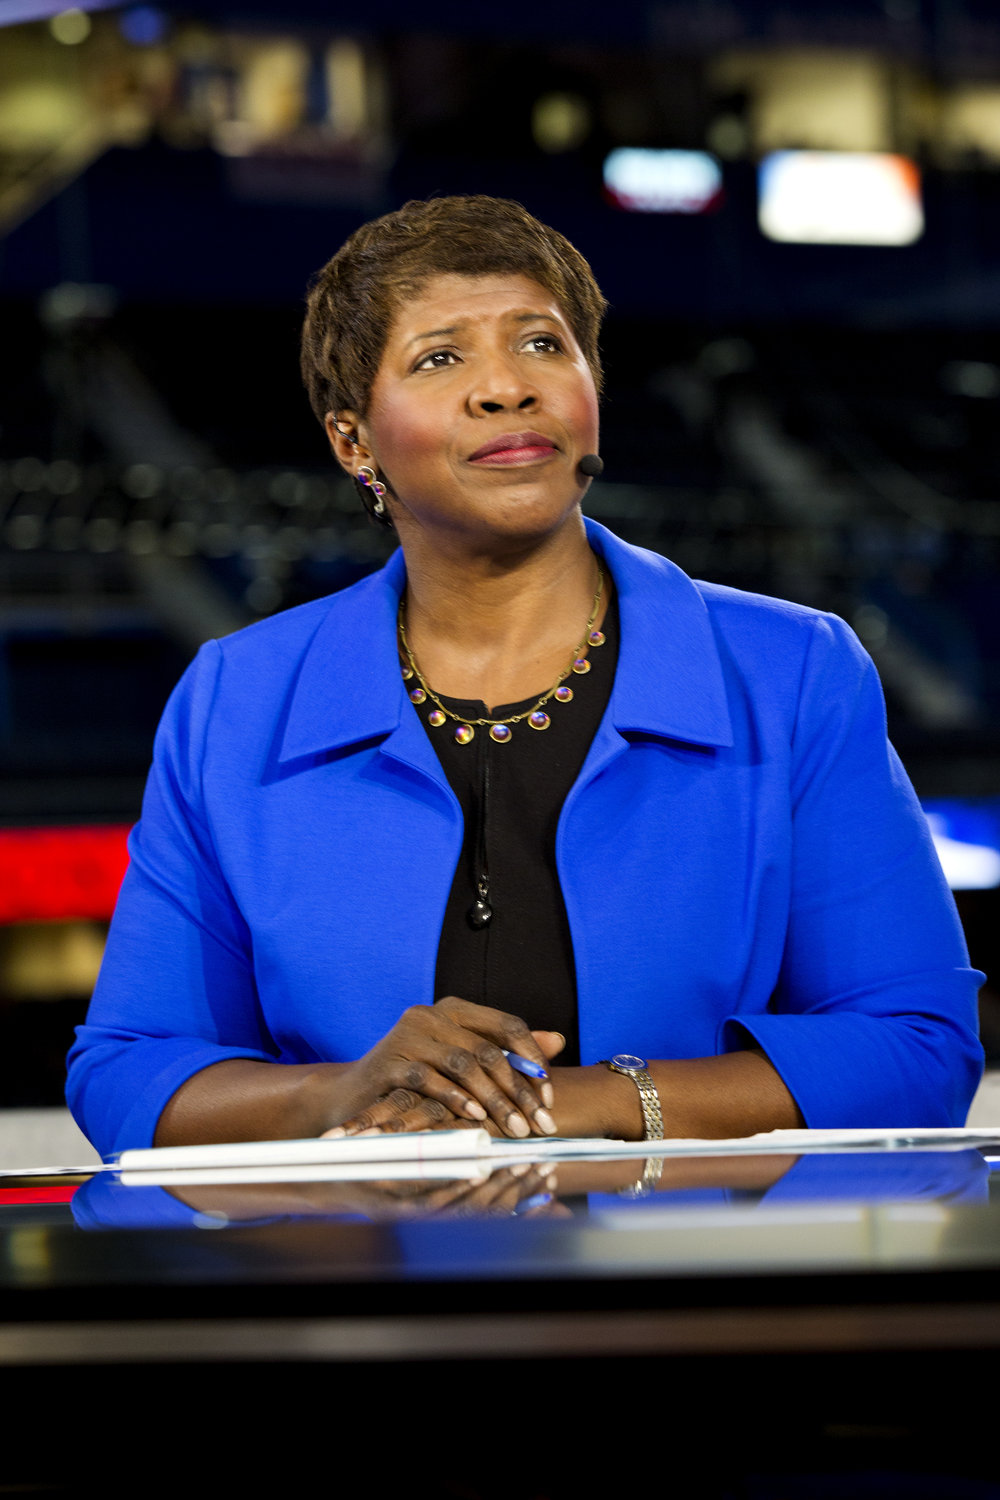 Photo courtesy of Wikimedia Commons/PBS NewsHour  Gwen Ifill hosts  PBS NewsHour  at the RNC in 2012.